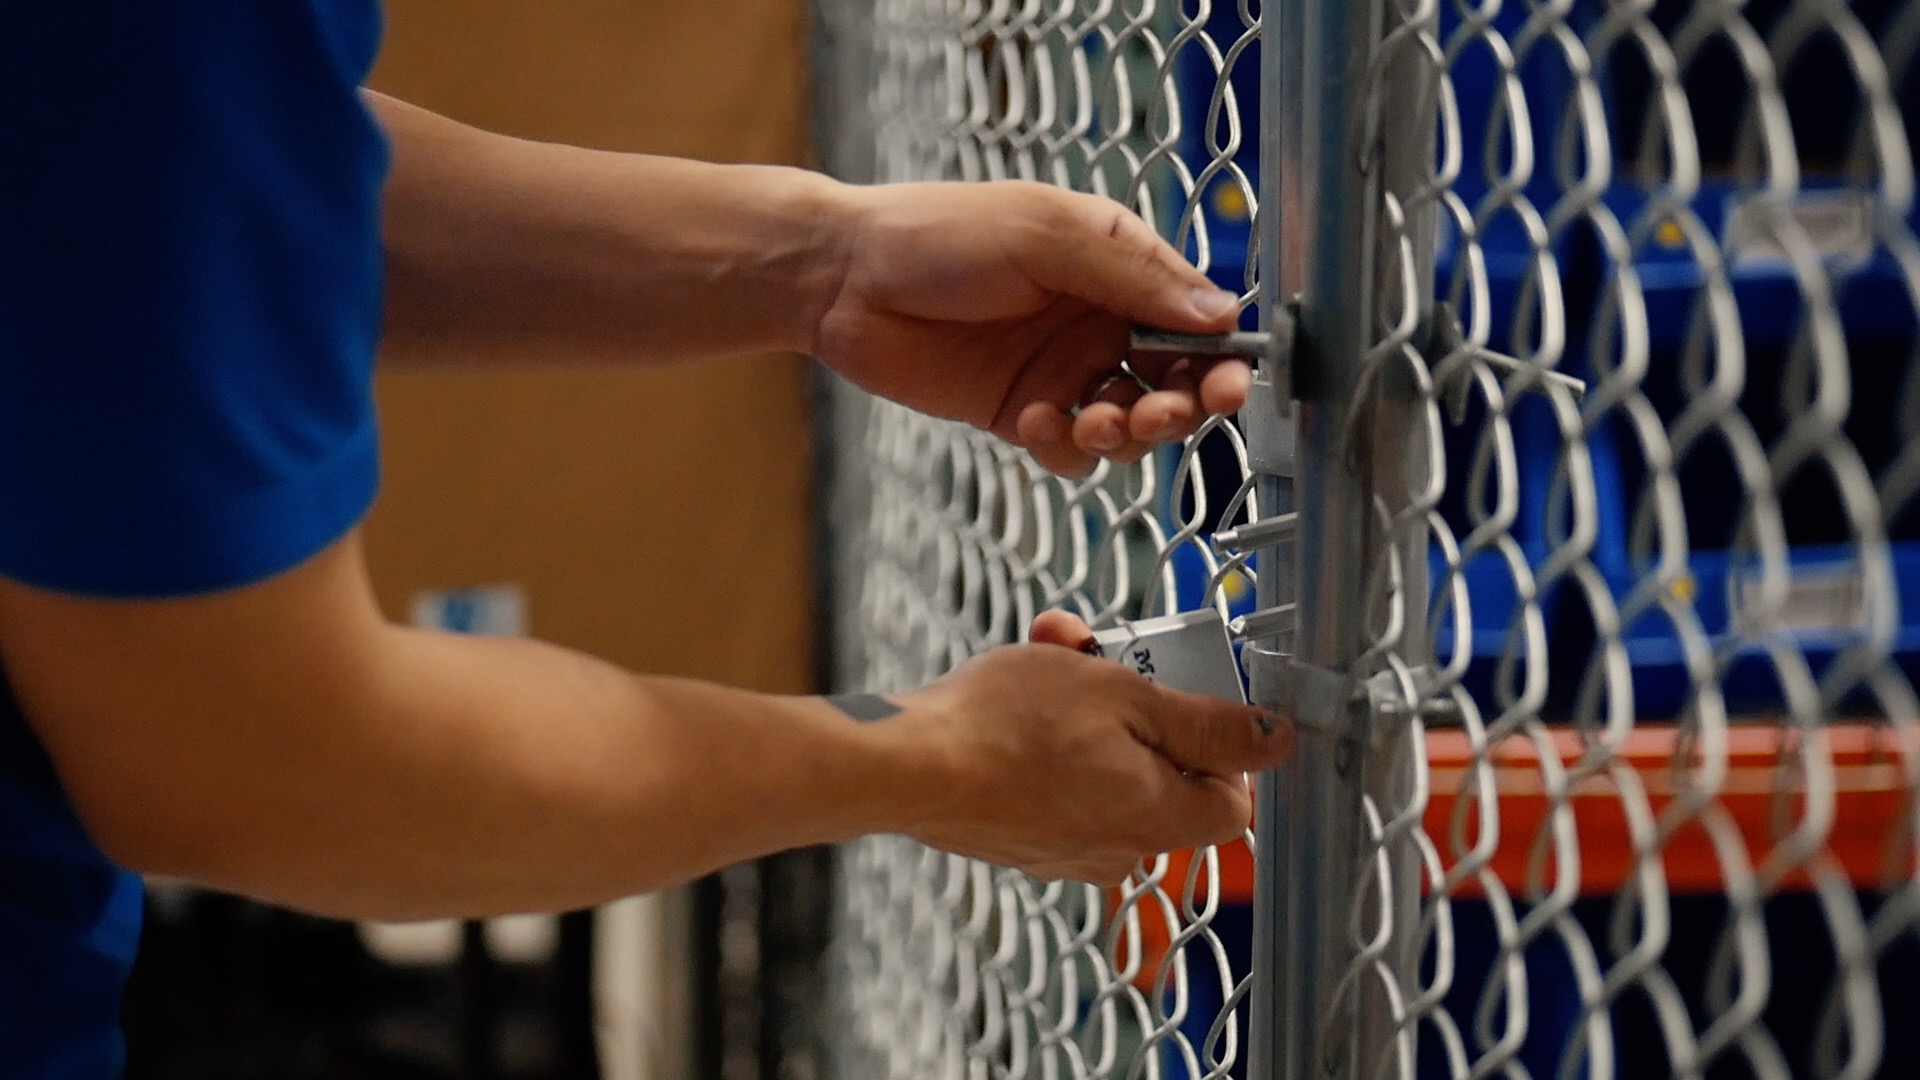 WDSrx employee securing lock at one of pharmaceutical logistic facilities